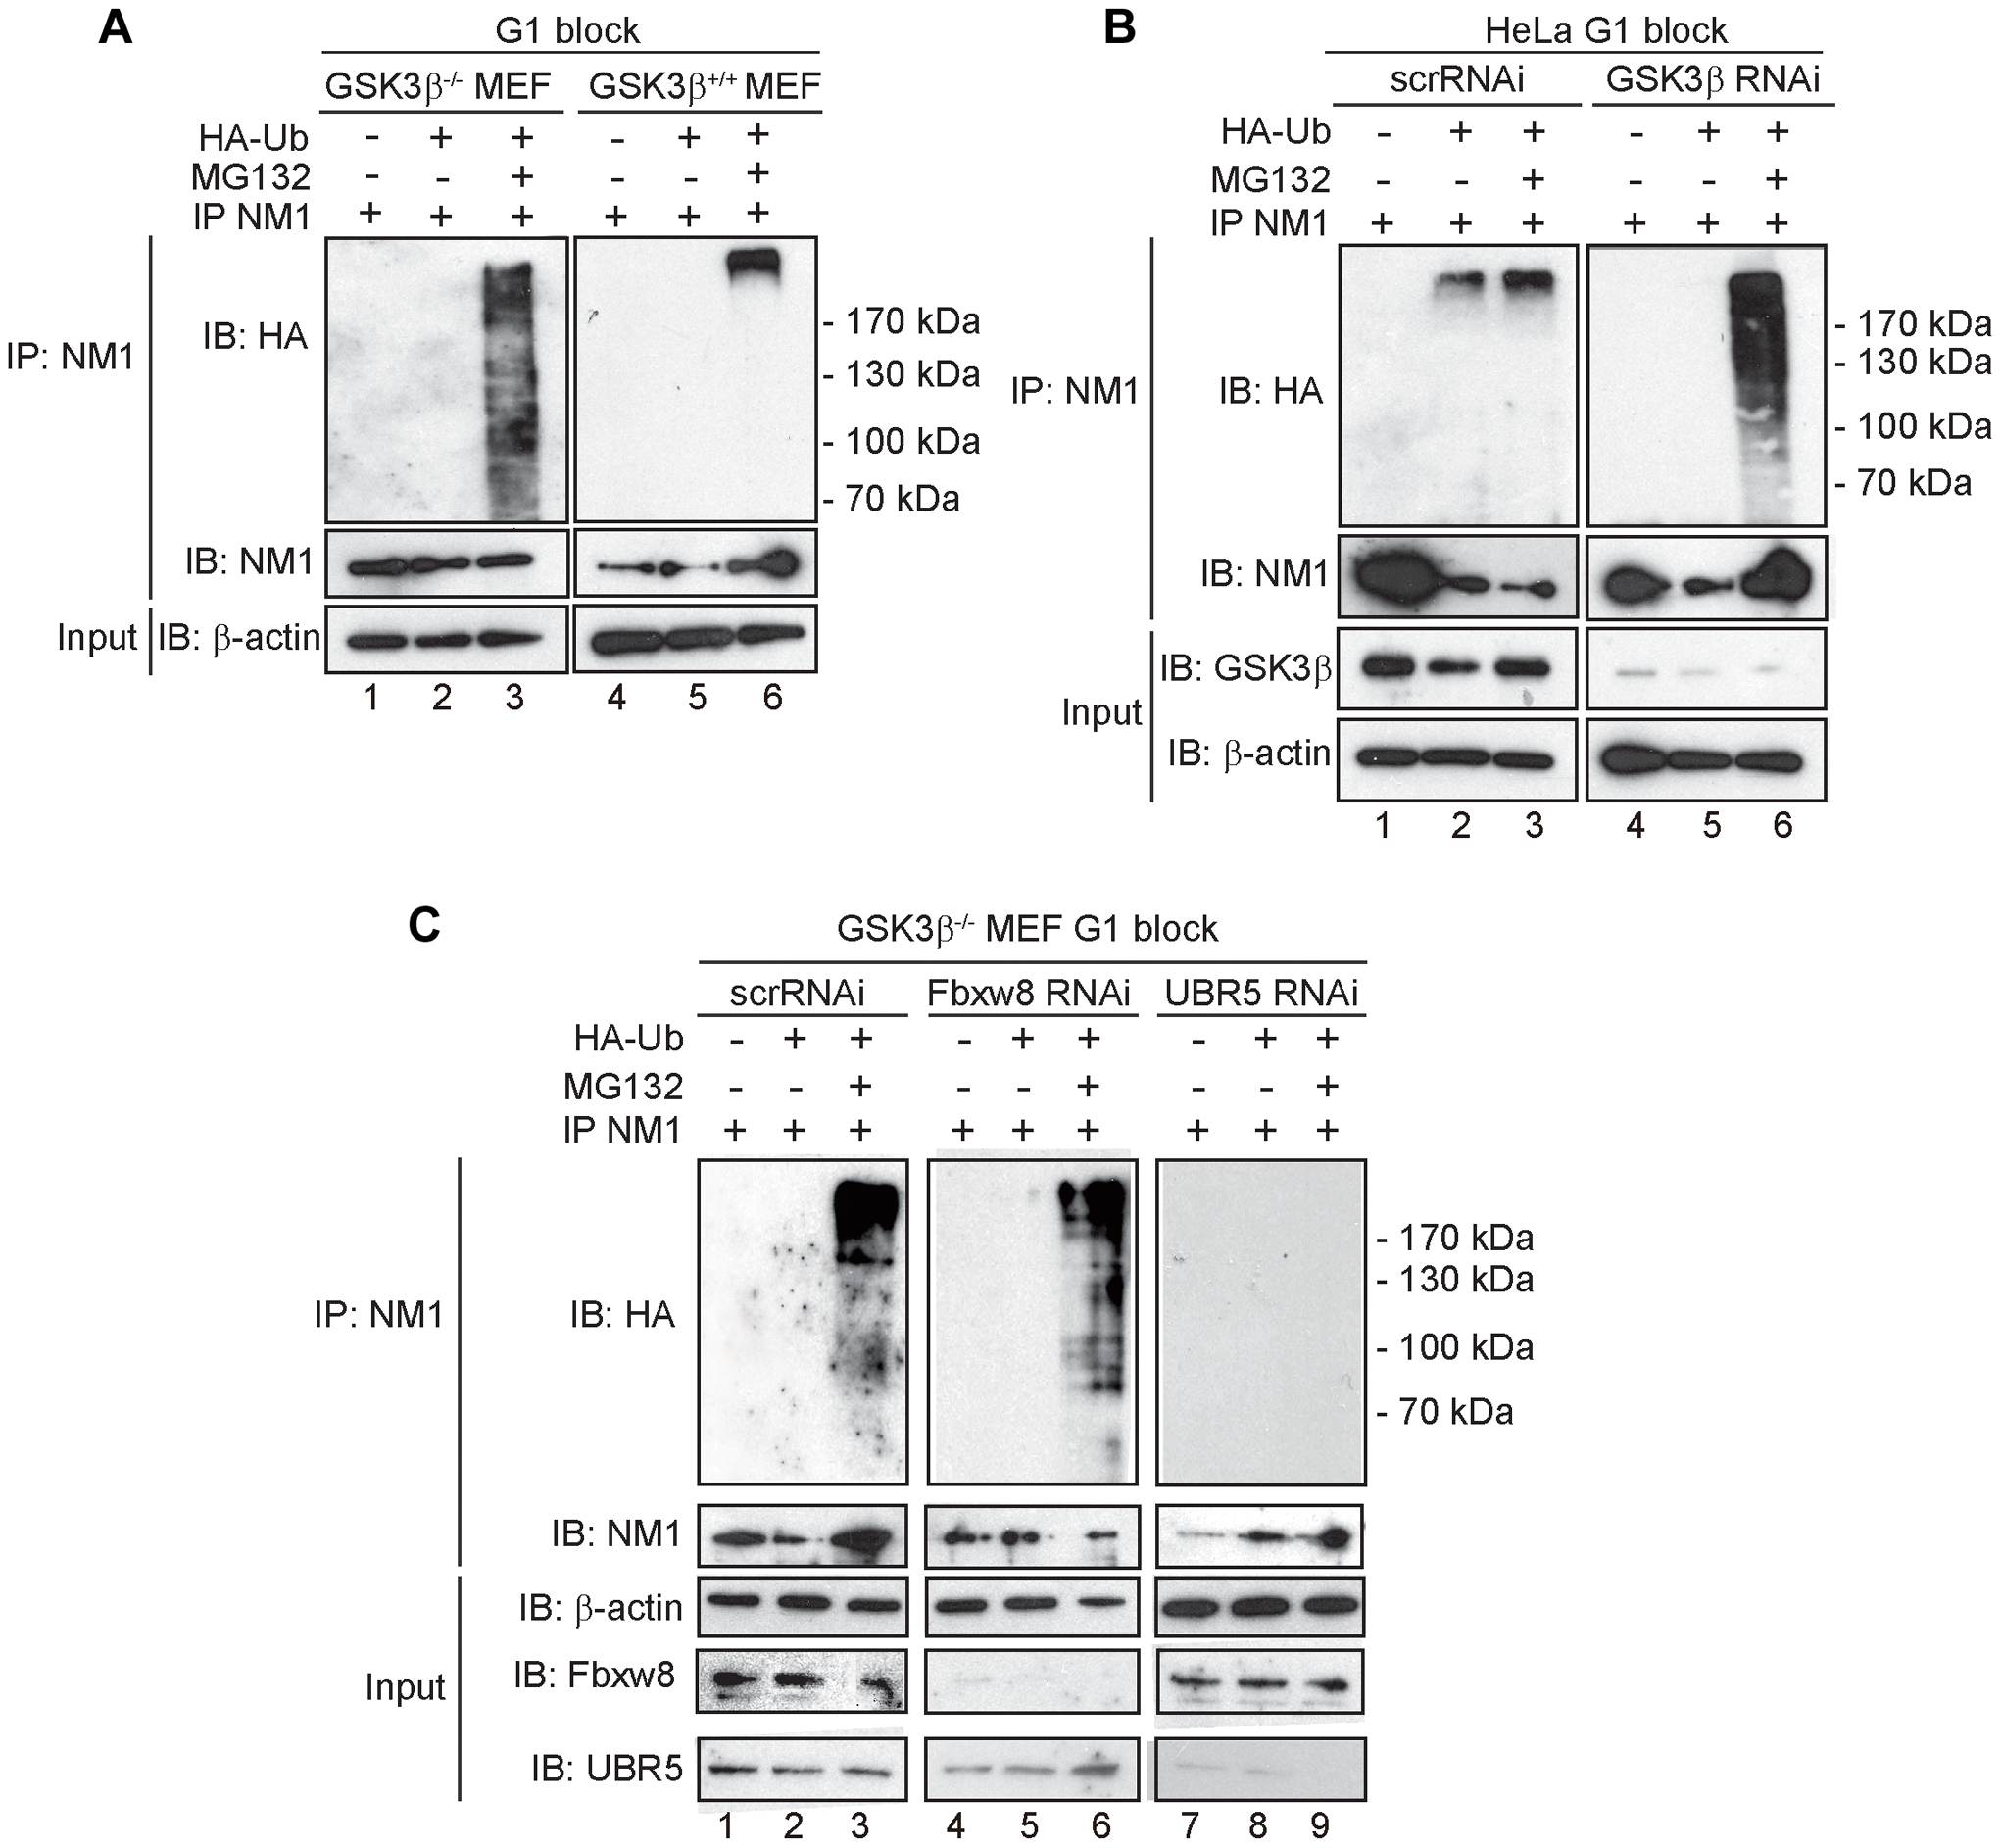 At G1, NM1 is ubiquitinated in a GSK3β-dependent manner by the E3 ligase UBR5.